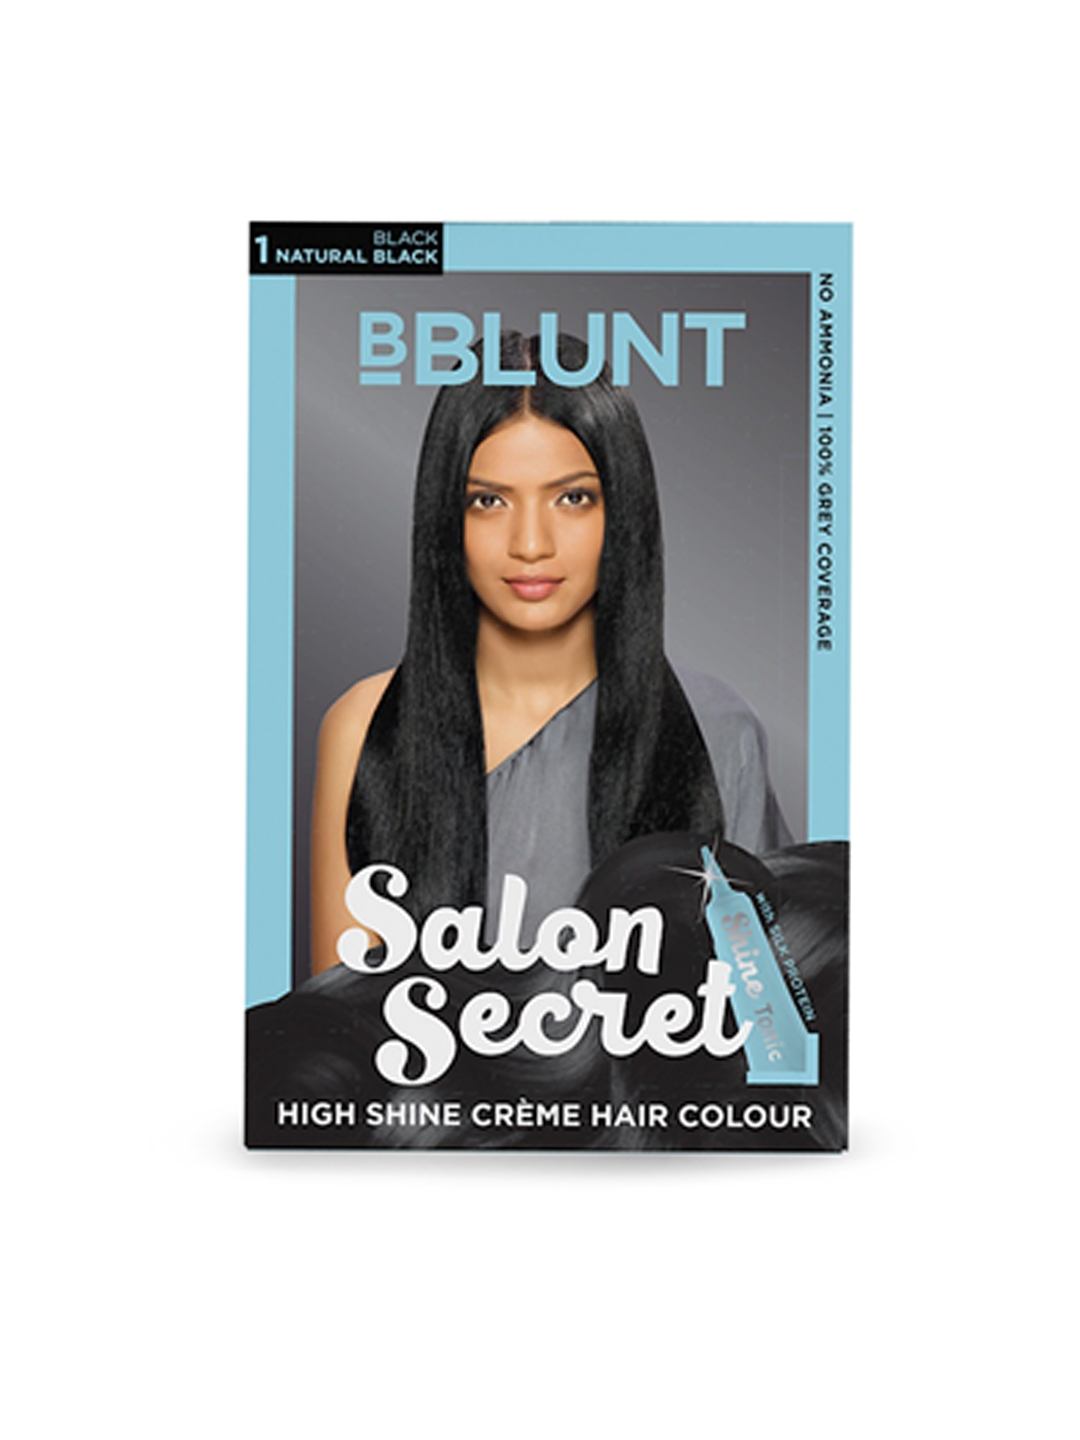 22eb55ac56c Buy BBLUNT Salon Secret Natural Black High Shine Creme Hair Colour 1 ...